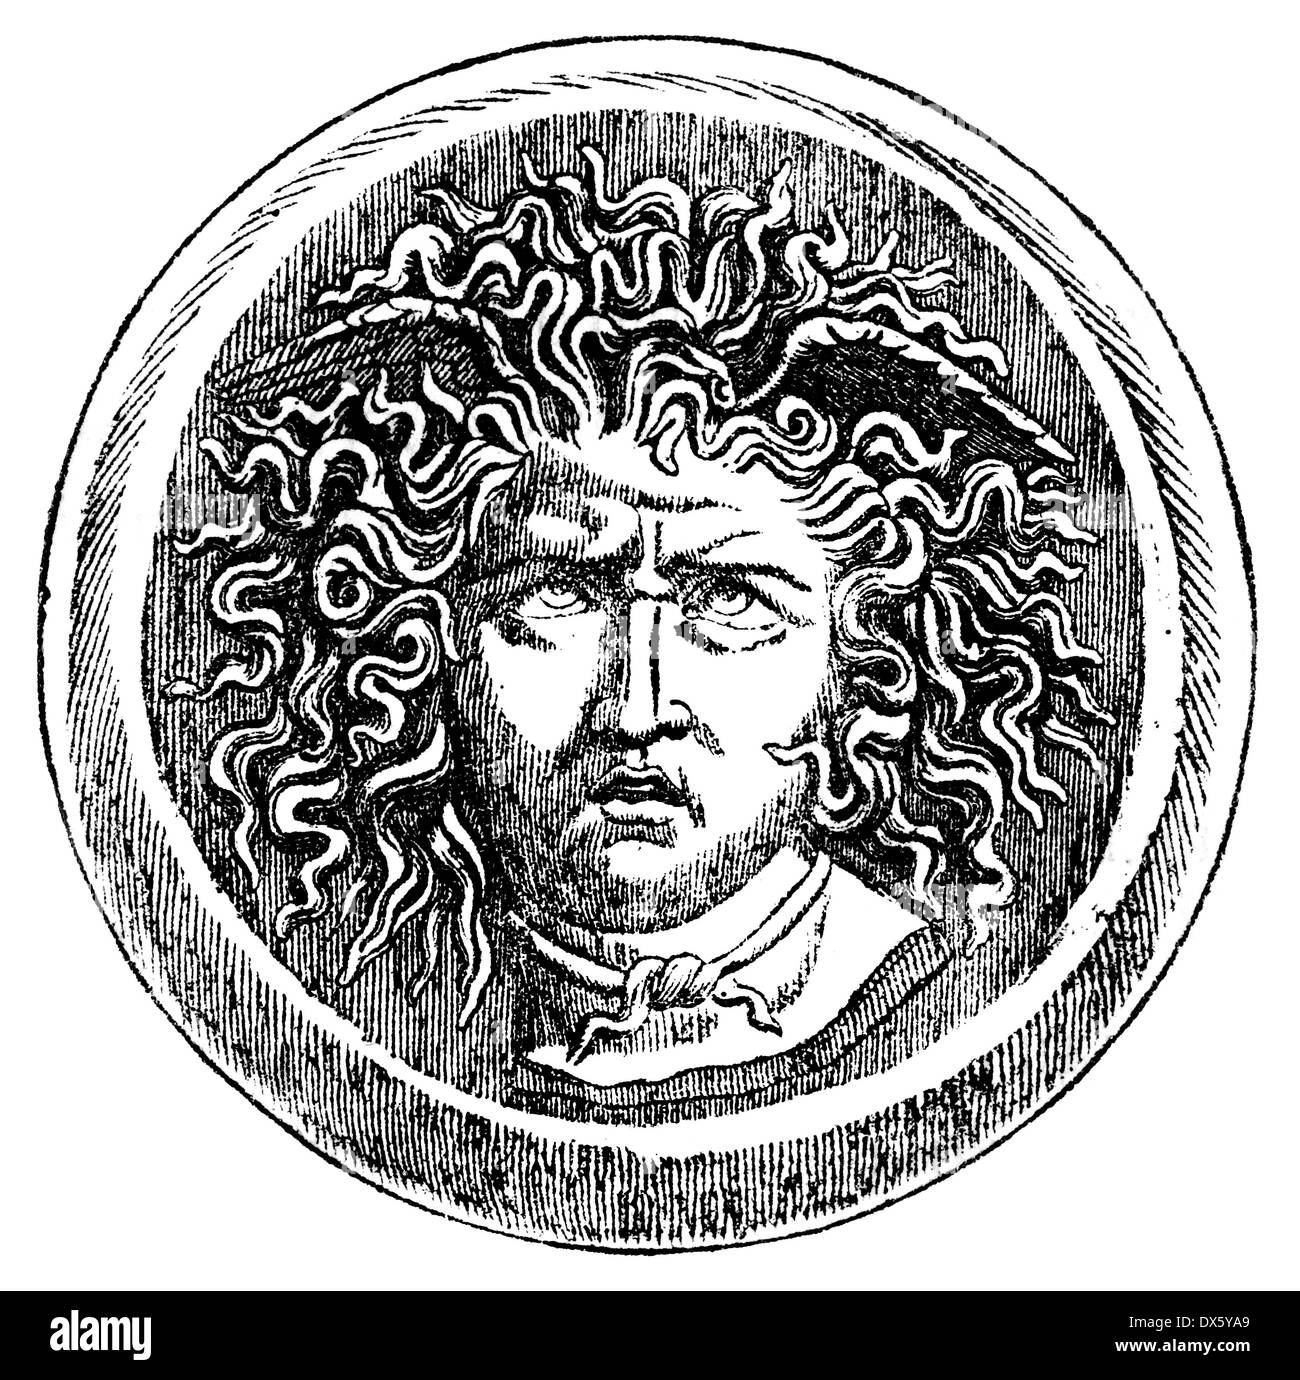 Medusa Drawing High Resolution Stock Photography And Images Alamy You can edit any of drawings via our online image editor before downloading. https www alamy com head of medusa illustration from book dated 1878 image67743377 html